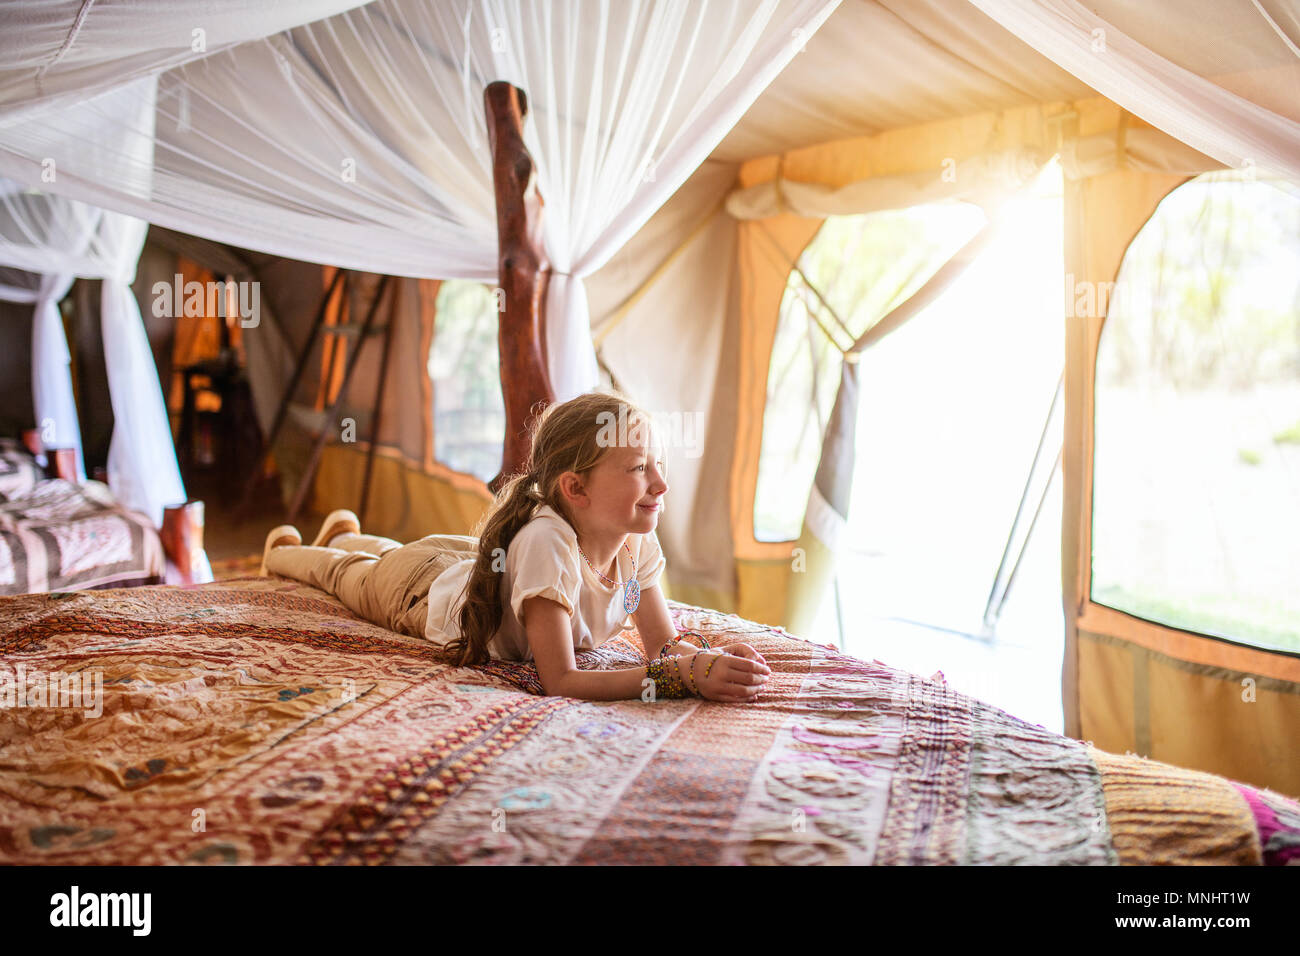 Little girl in safari tent enjoying vacation in Africa - Stock Image